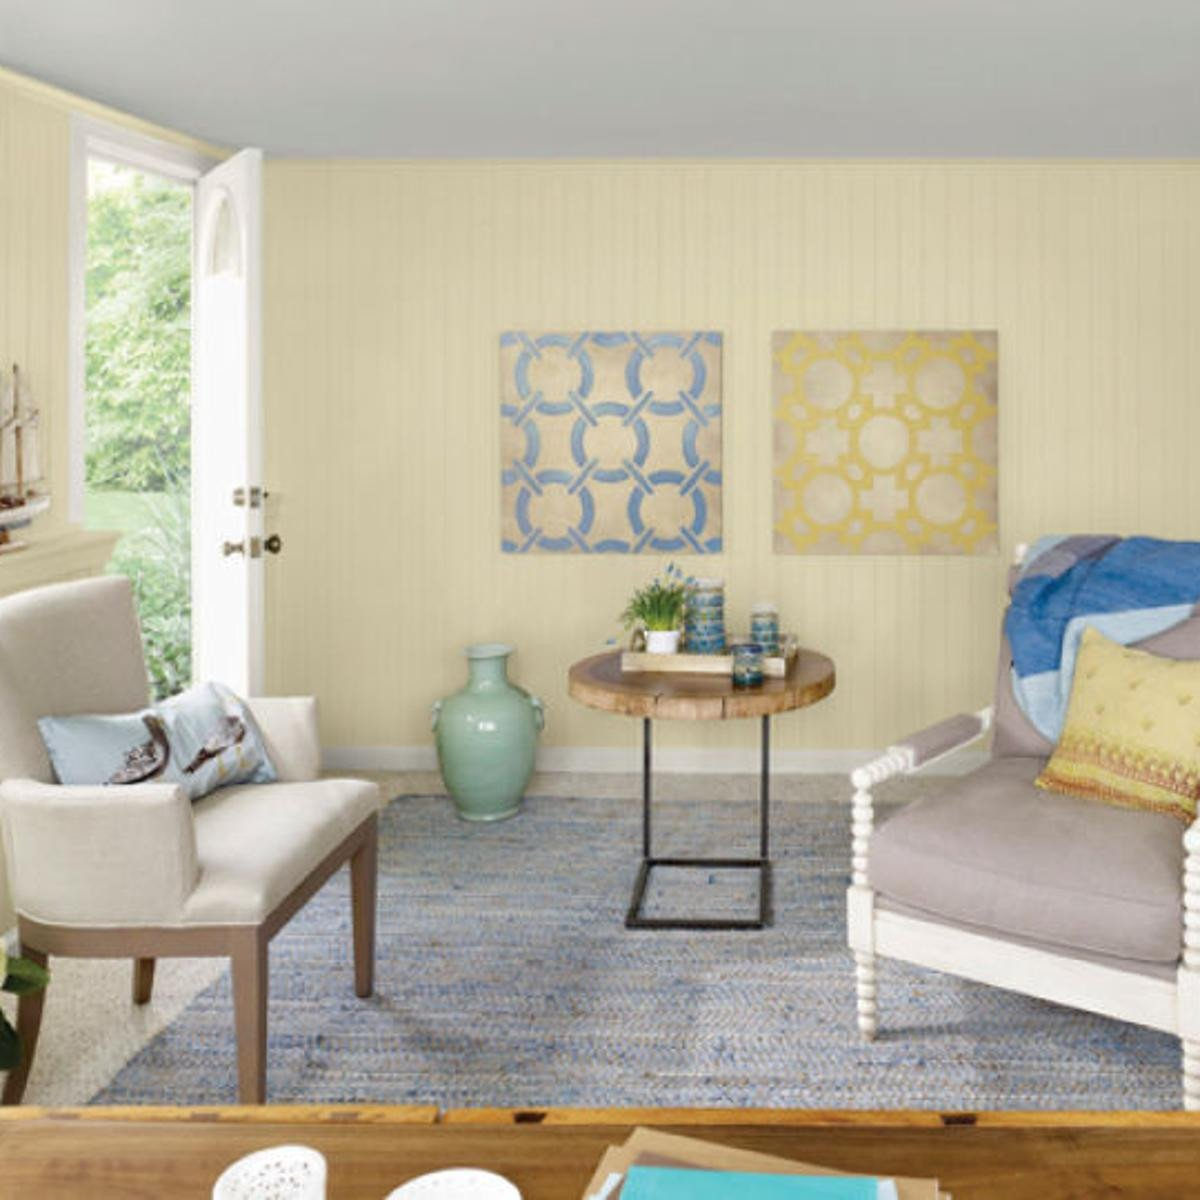 Yellow and Turquoise Bedroom Luxury Chill Out sorbet Colors soothing & Cooling for Summer